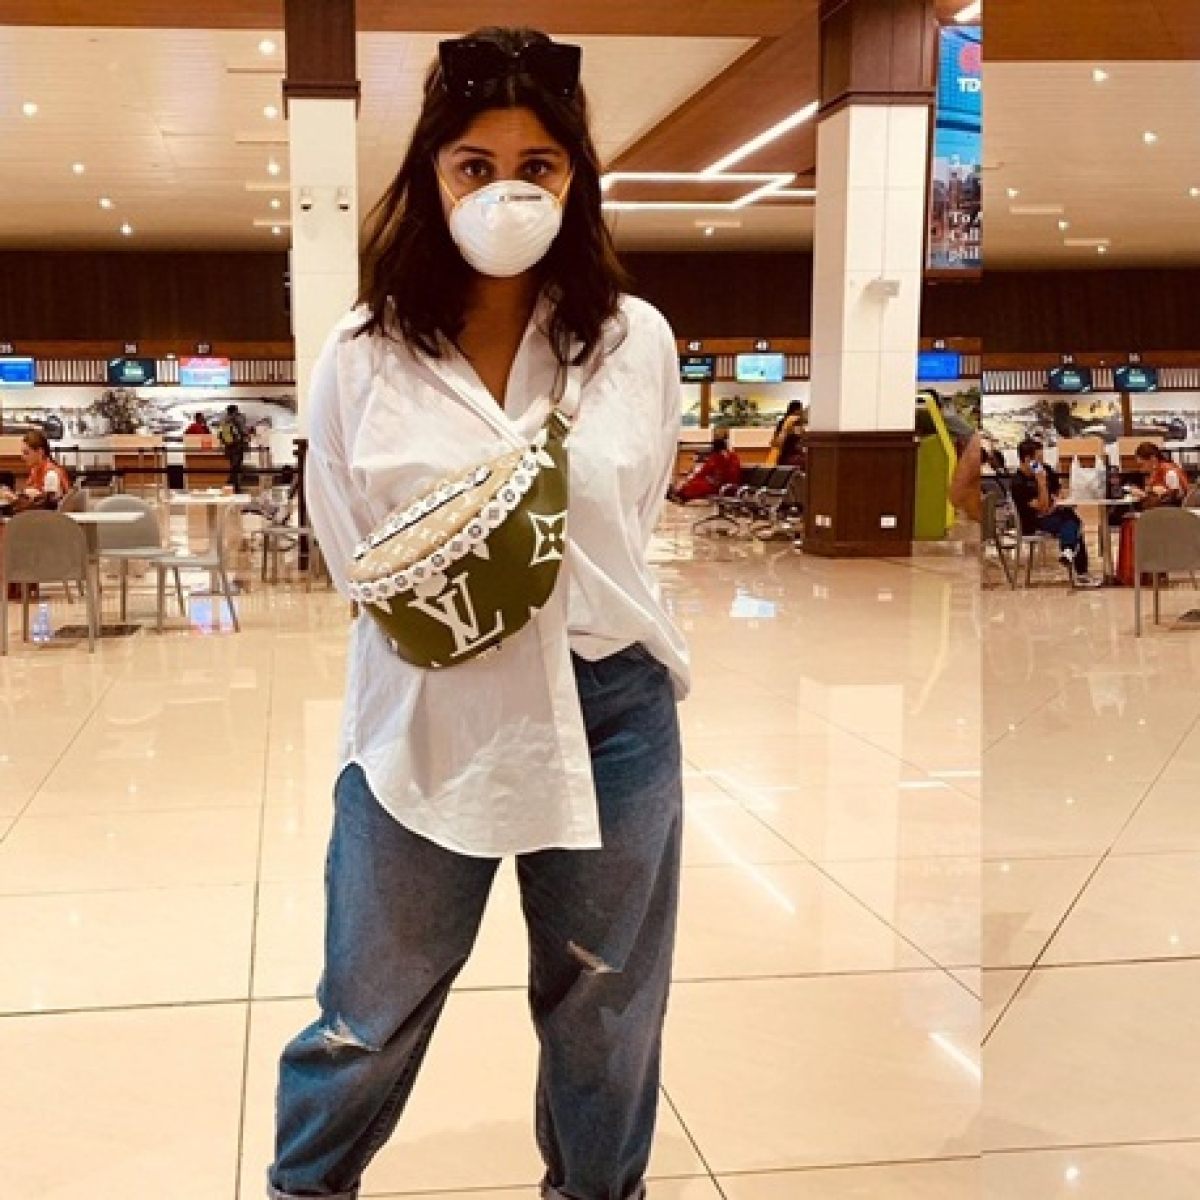 'Do it without your Louis Vuitton fanny pack': Parineeti Chopra trolled for coronavirus 'PSA'